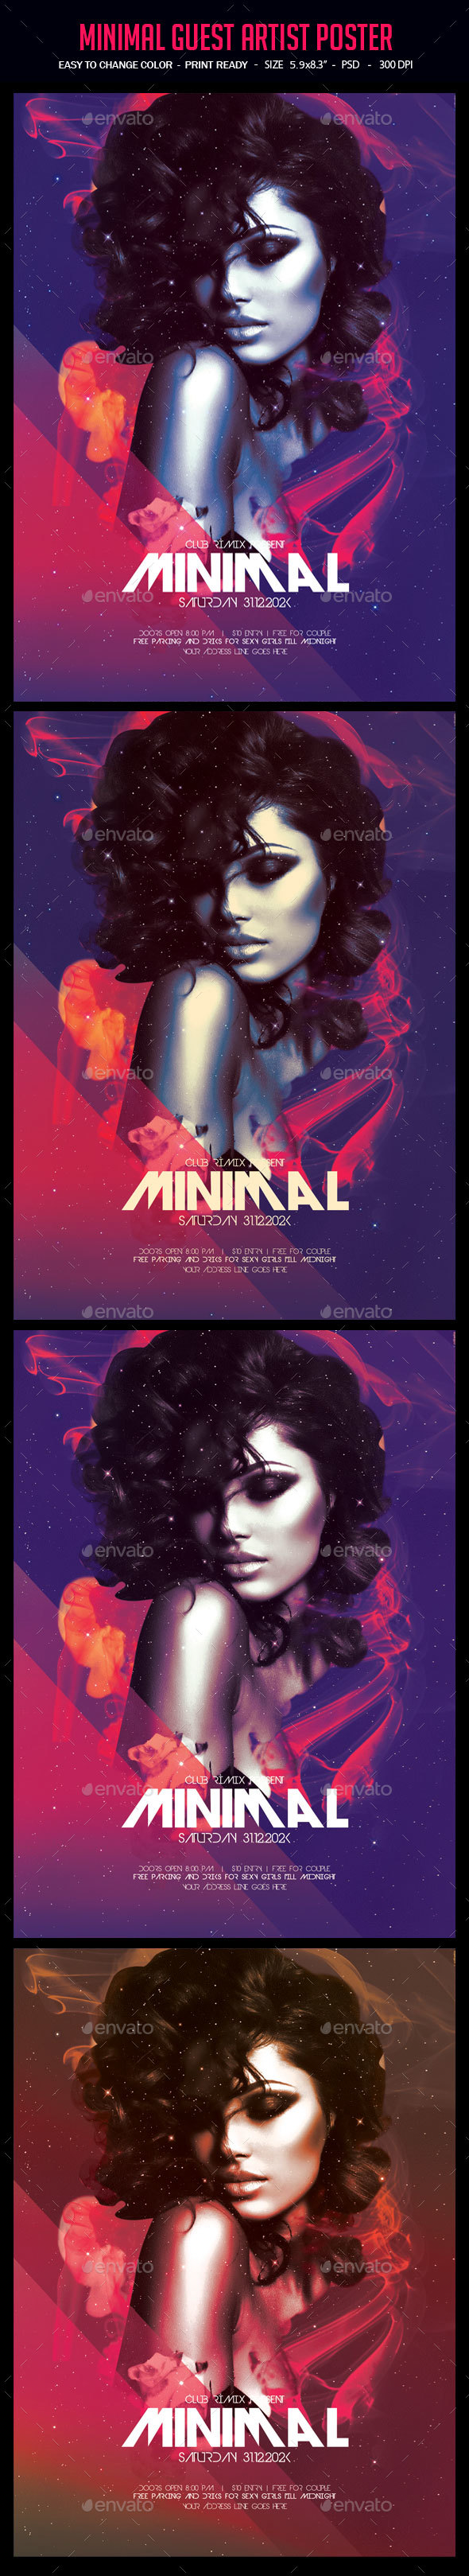 Minimal Guest Artist Poster - Clubs & Parties Events